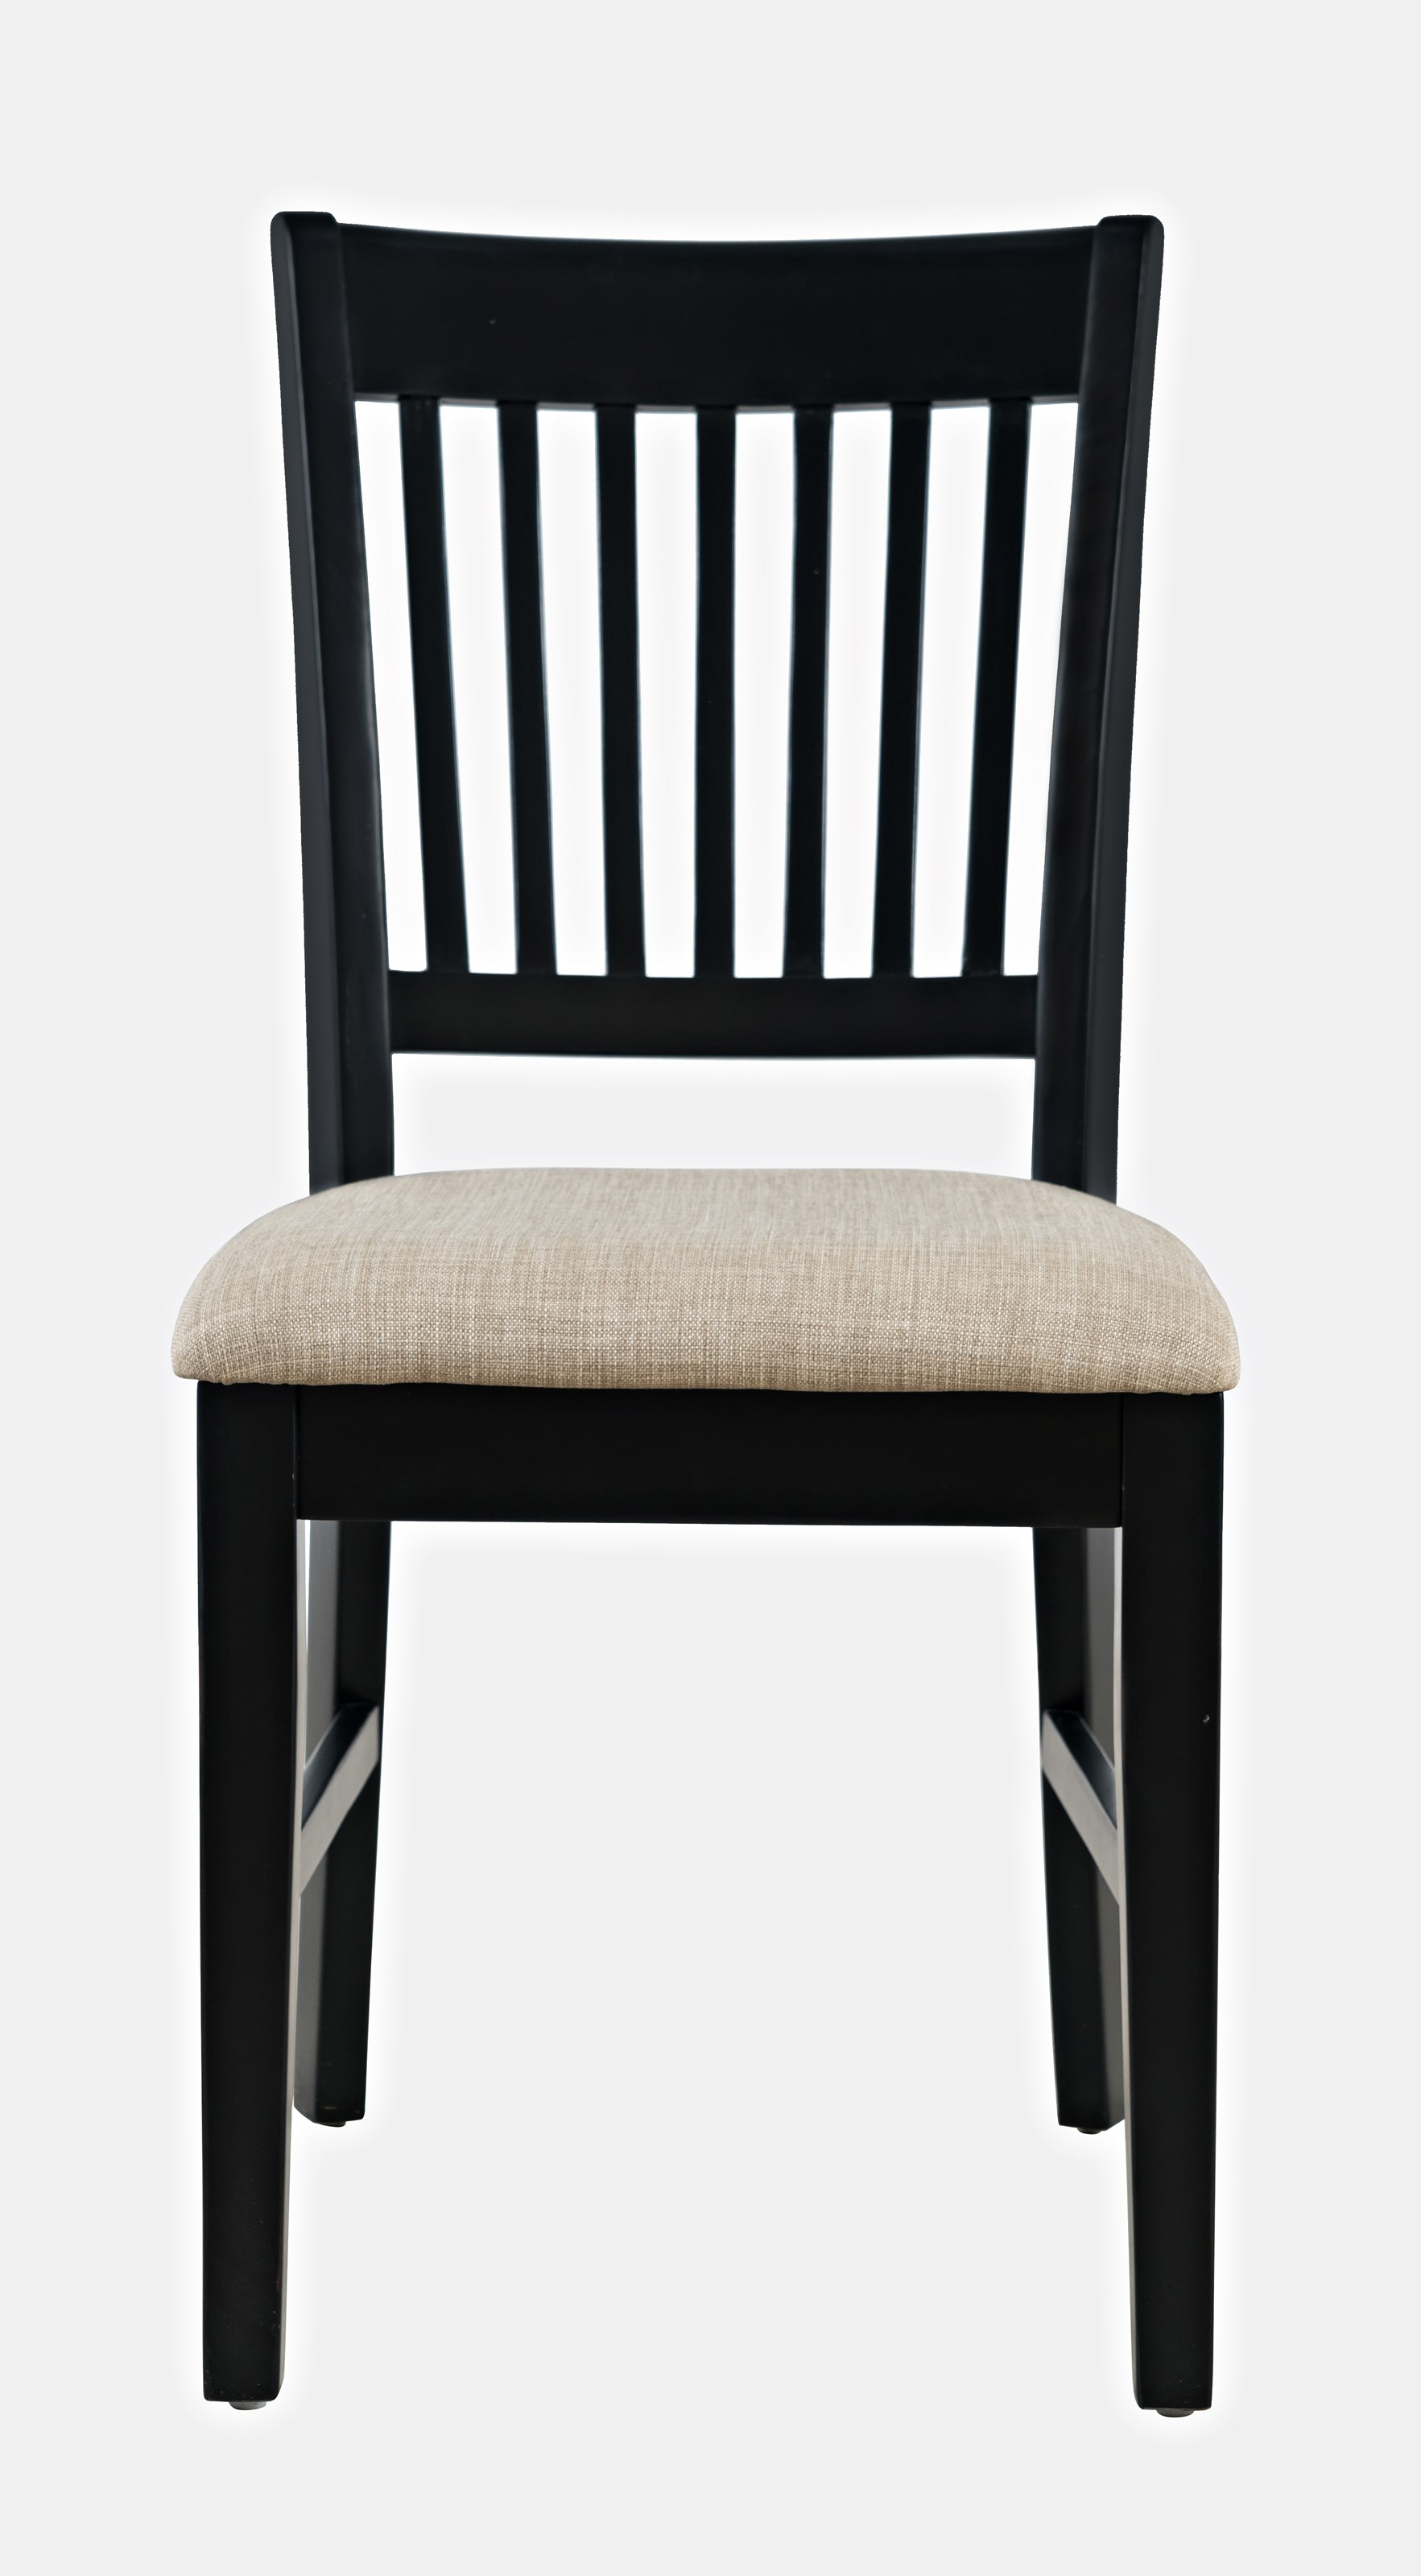 Craftsman Desk Chair by Jofran at Home Furnishings Direct